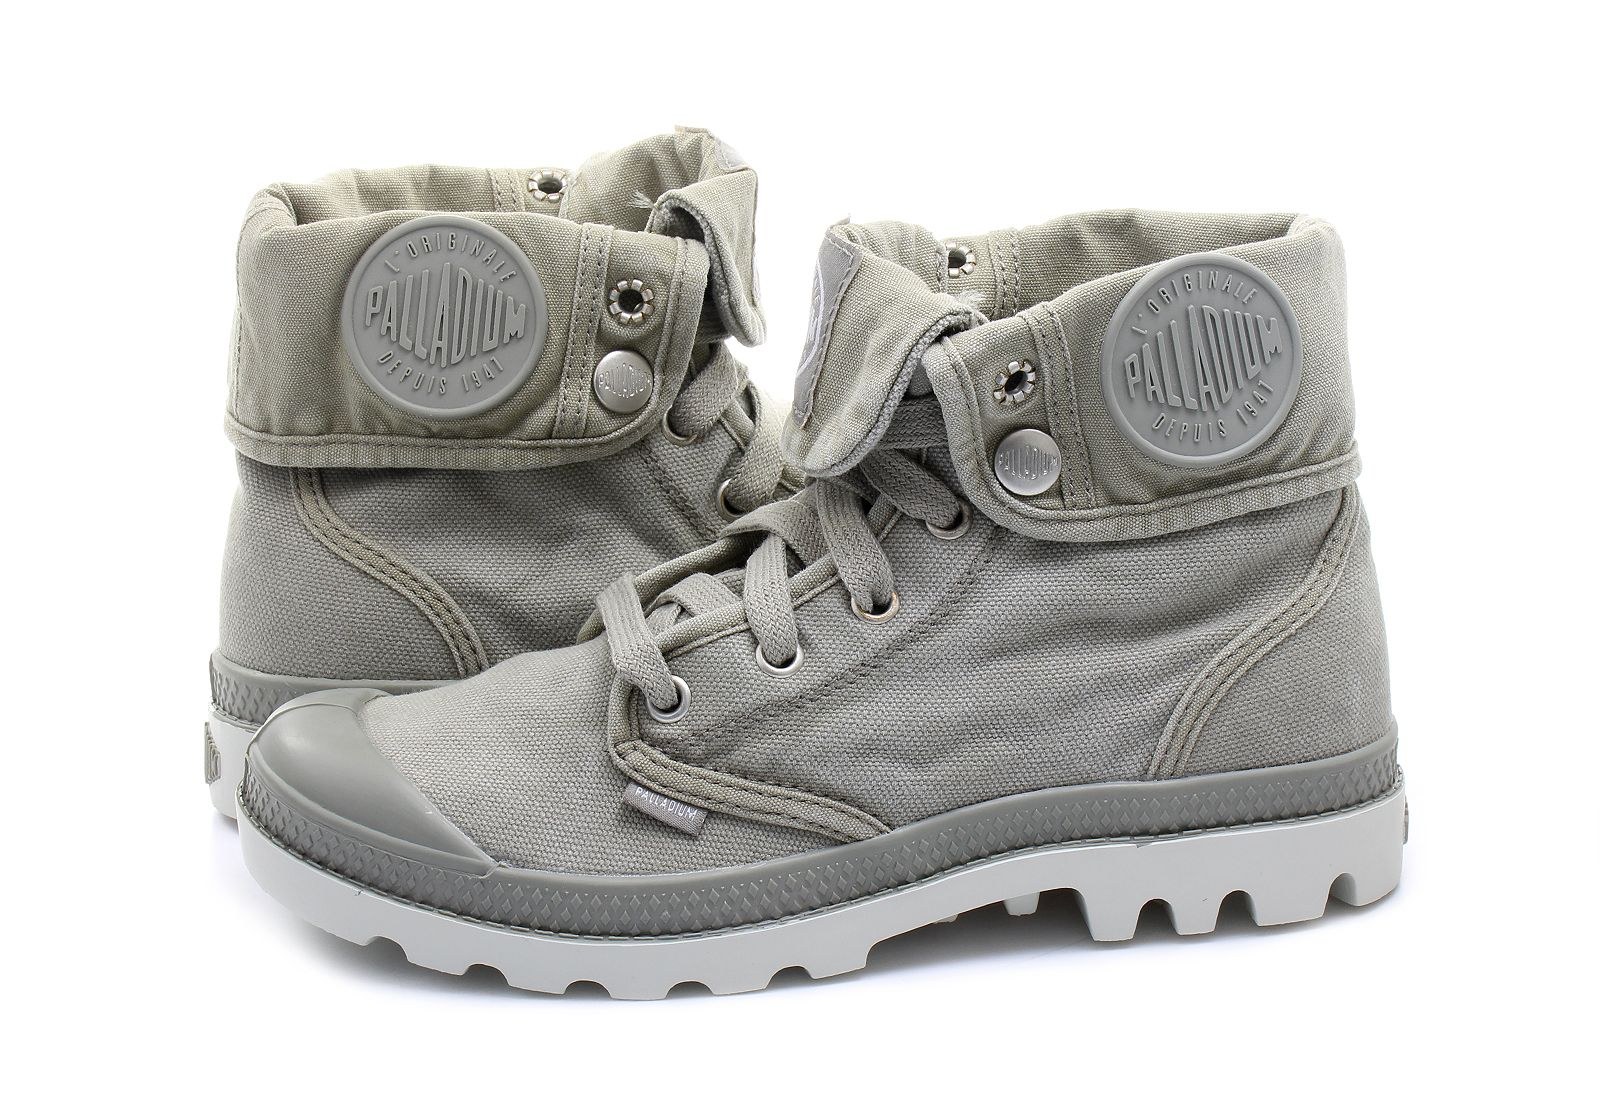 Palladium Shoes Baggy 92353 088 M Online Shop For